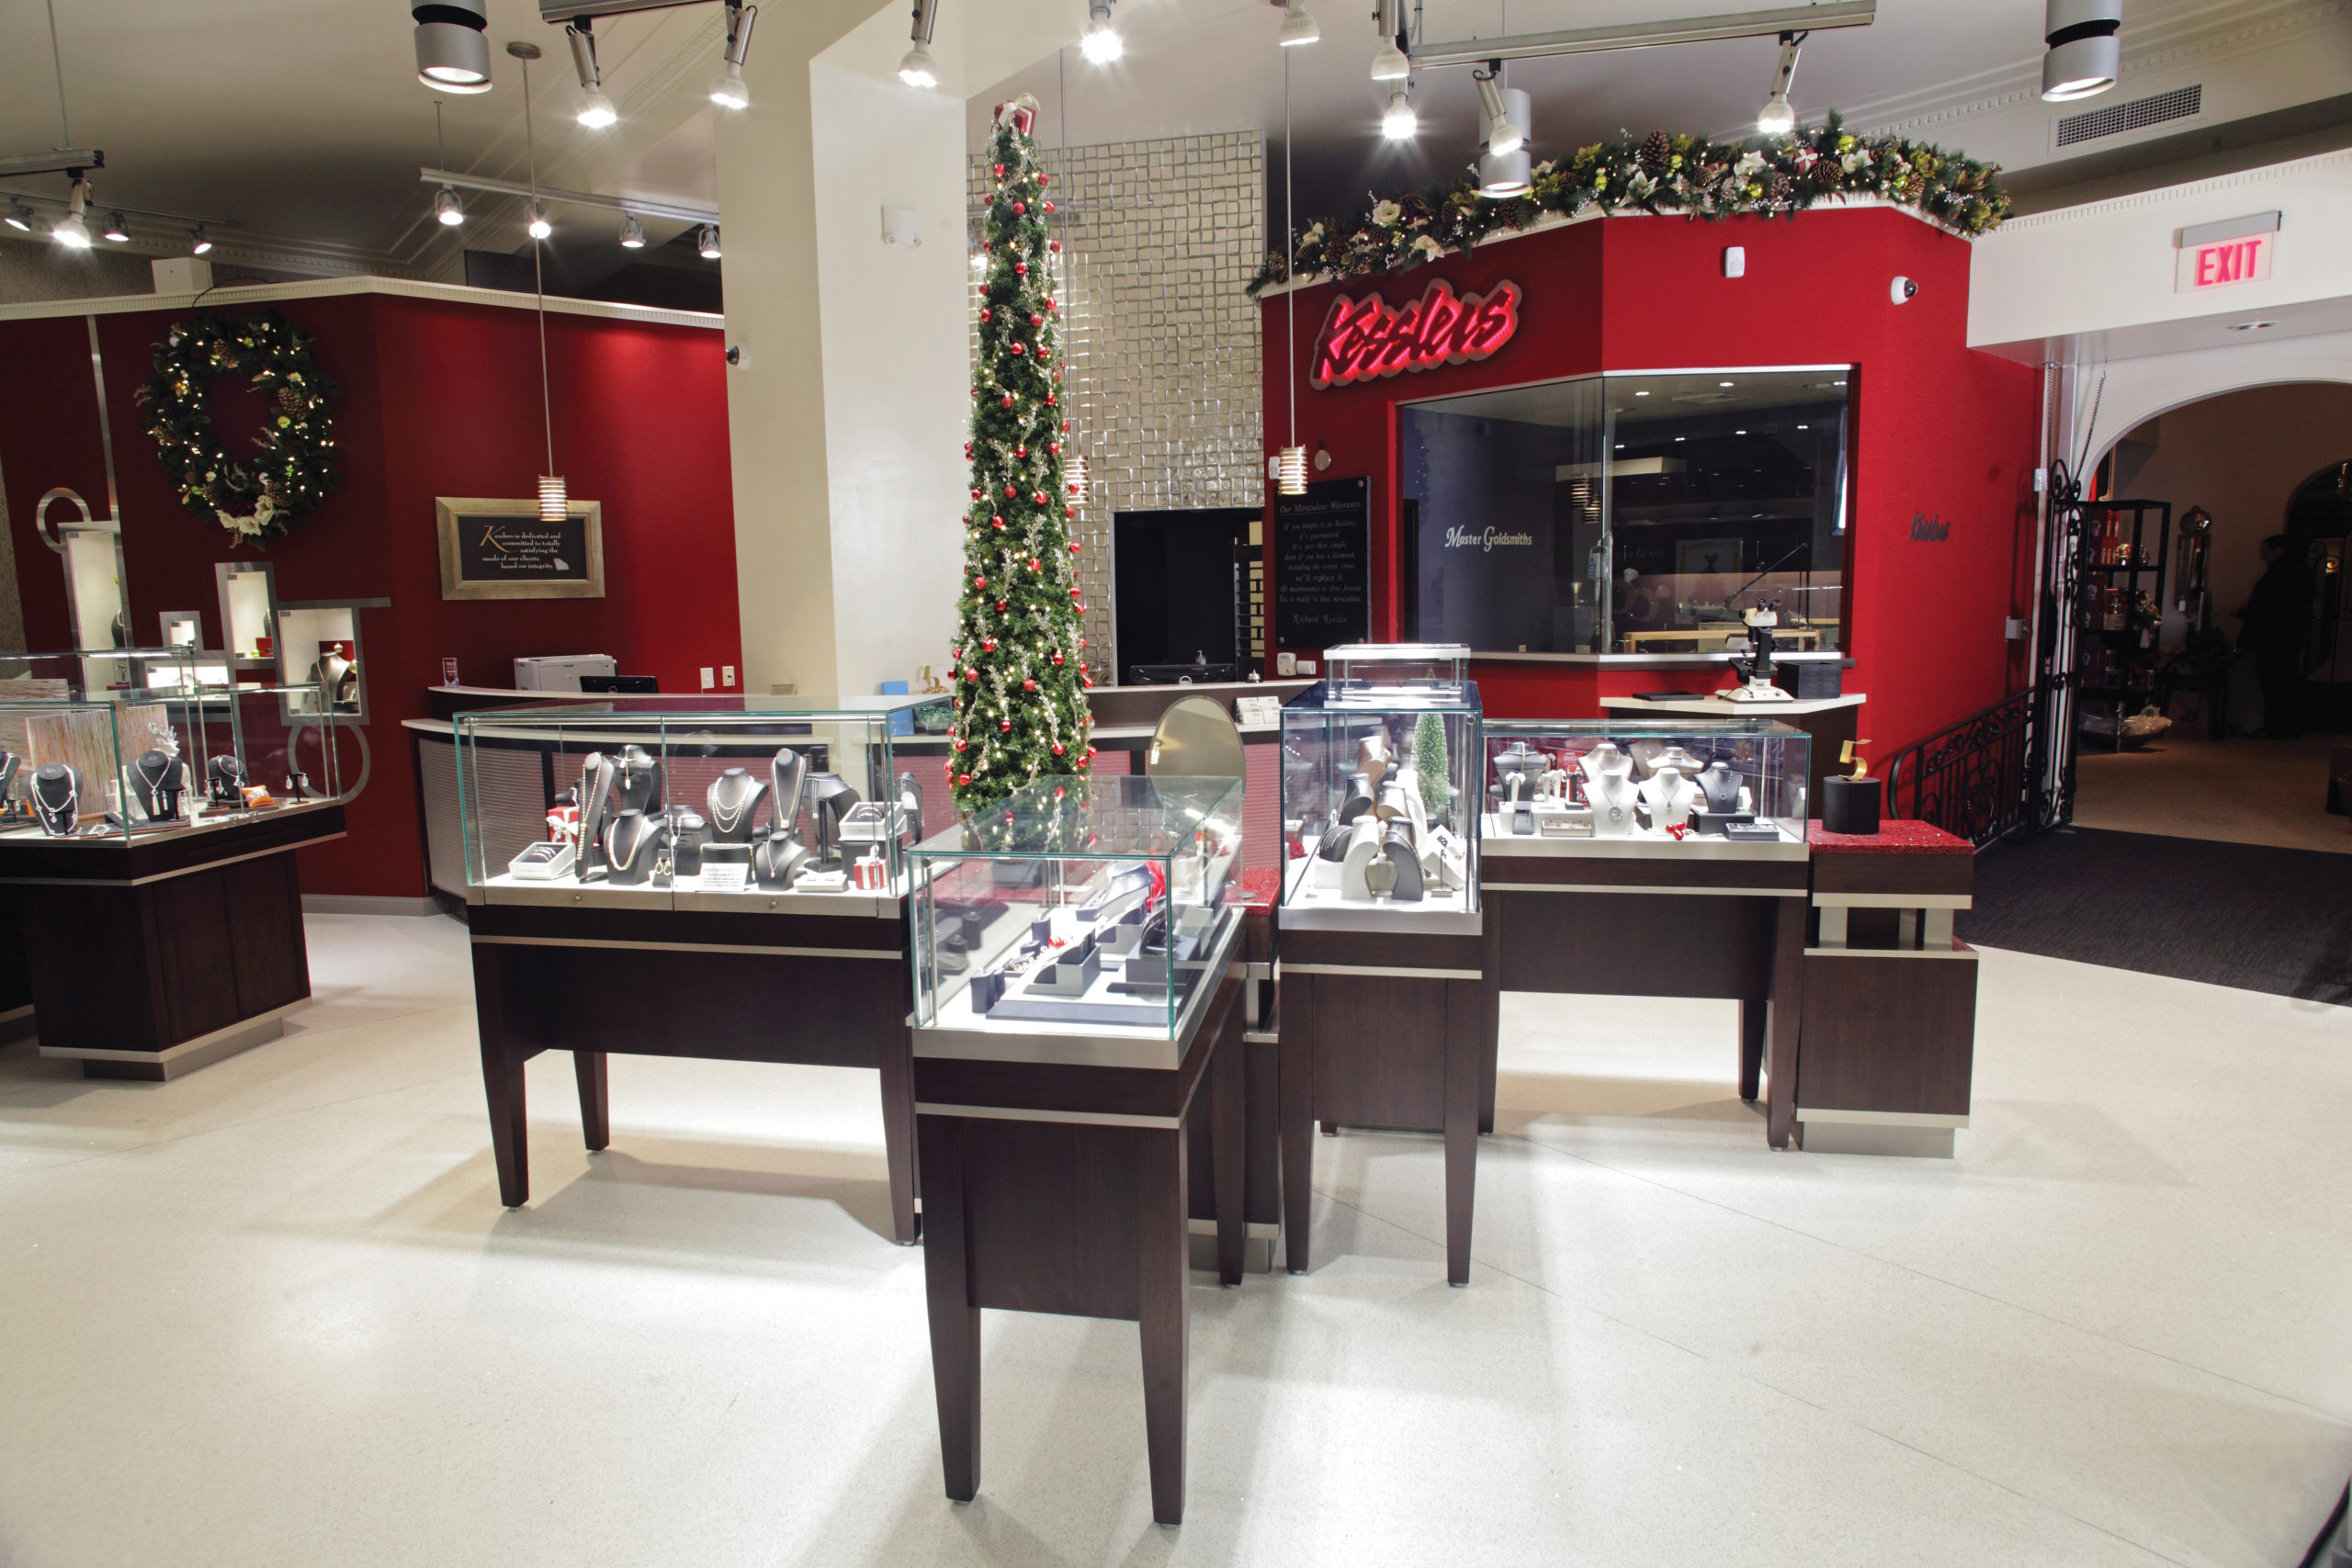 Glass displays cases decorated for the holidays in Kesslers Diamonds